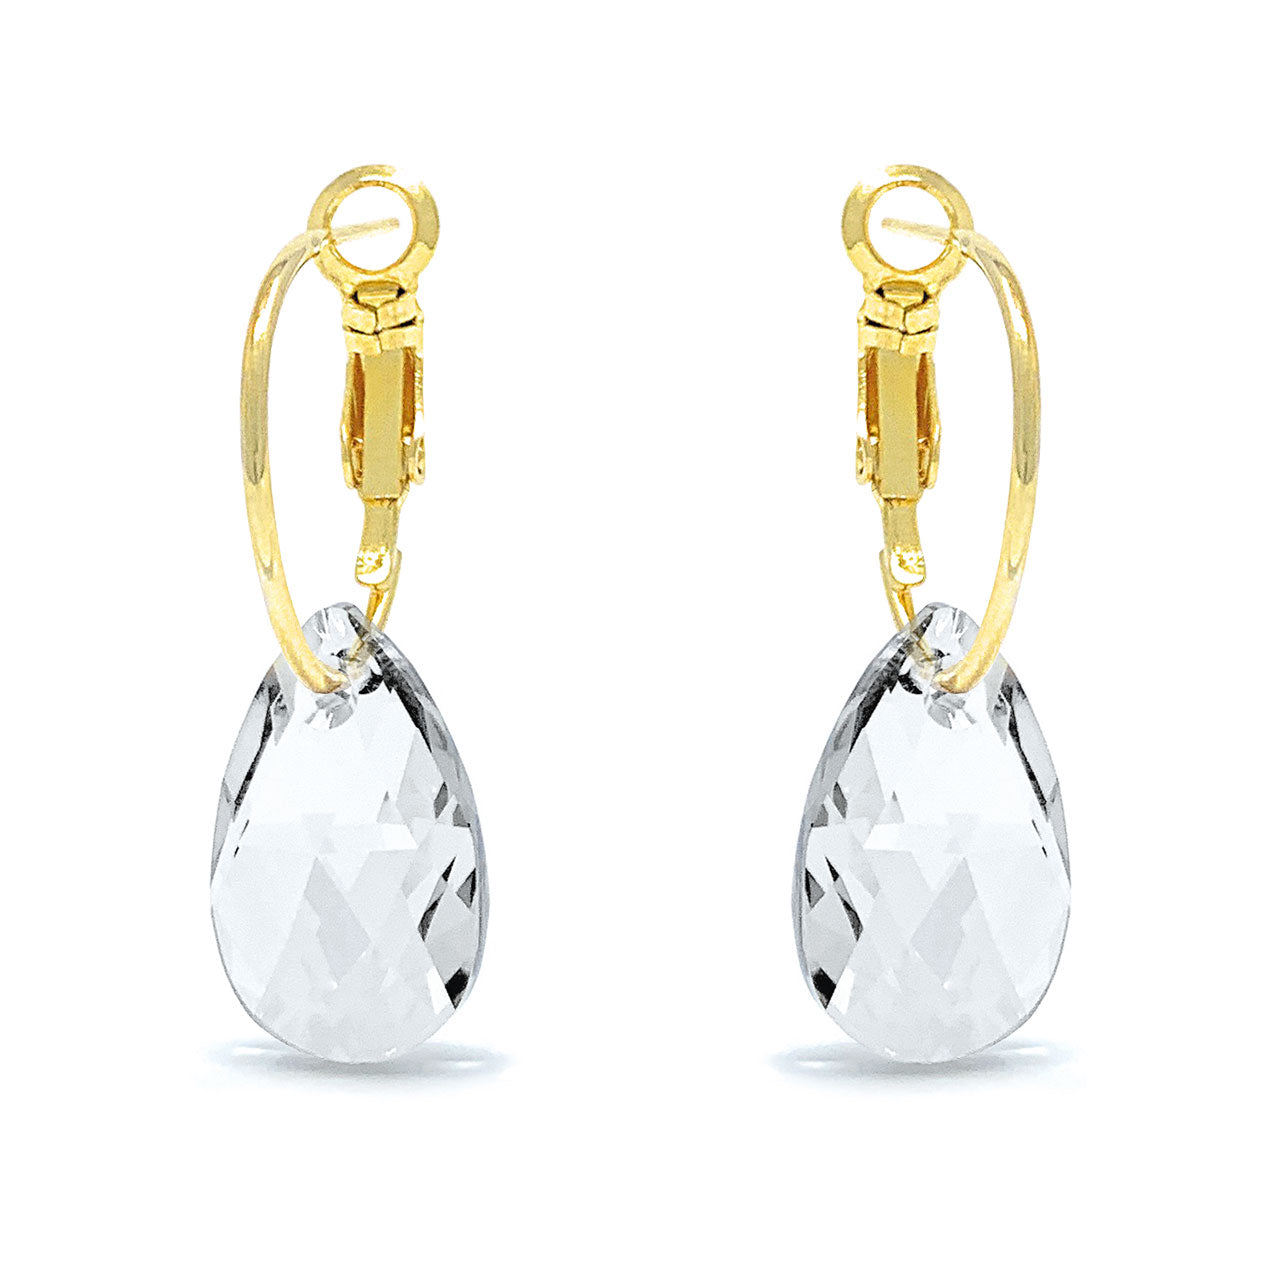 Aurora Small Drop Earrings with White Clear Pear Crystals from Swarovski Gold Plated - Ed Heart